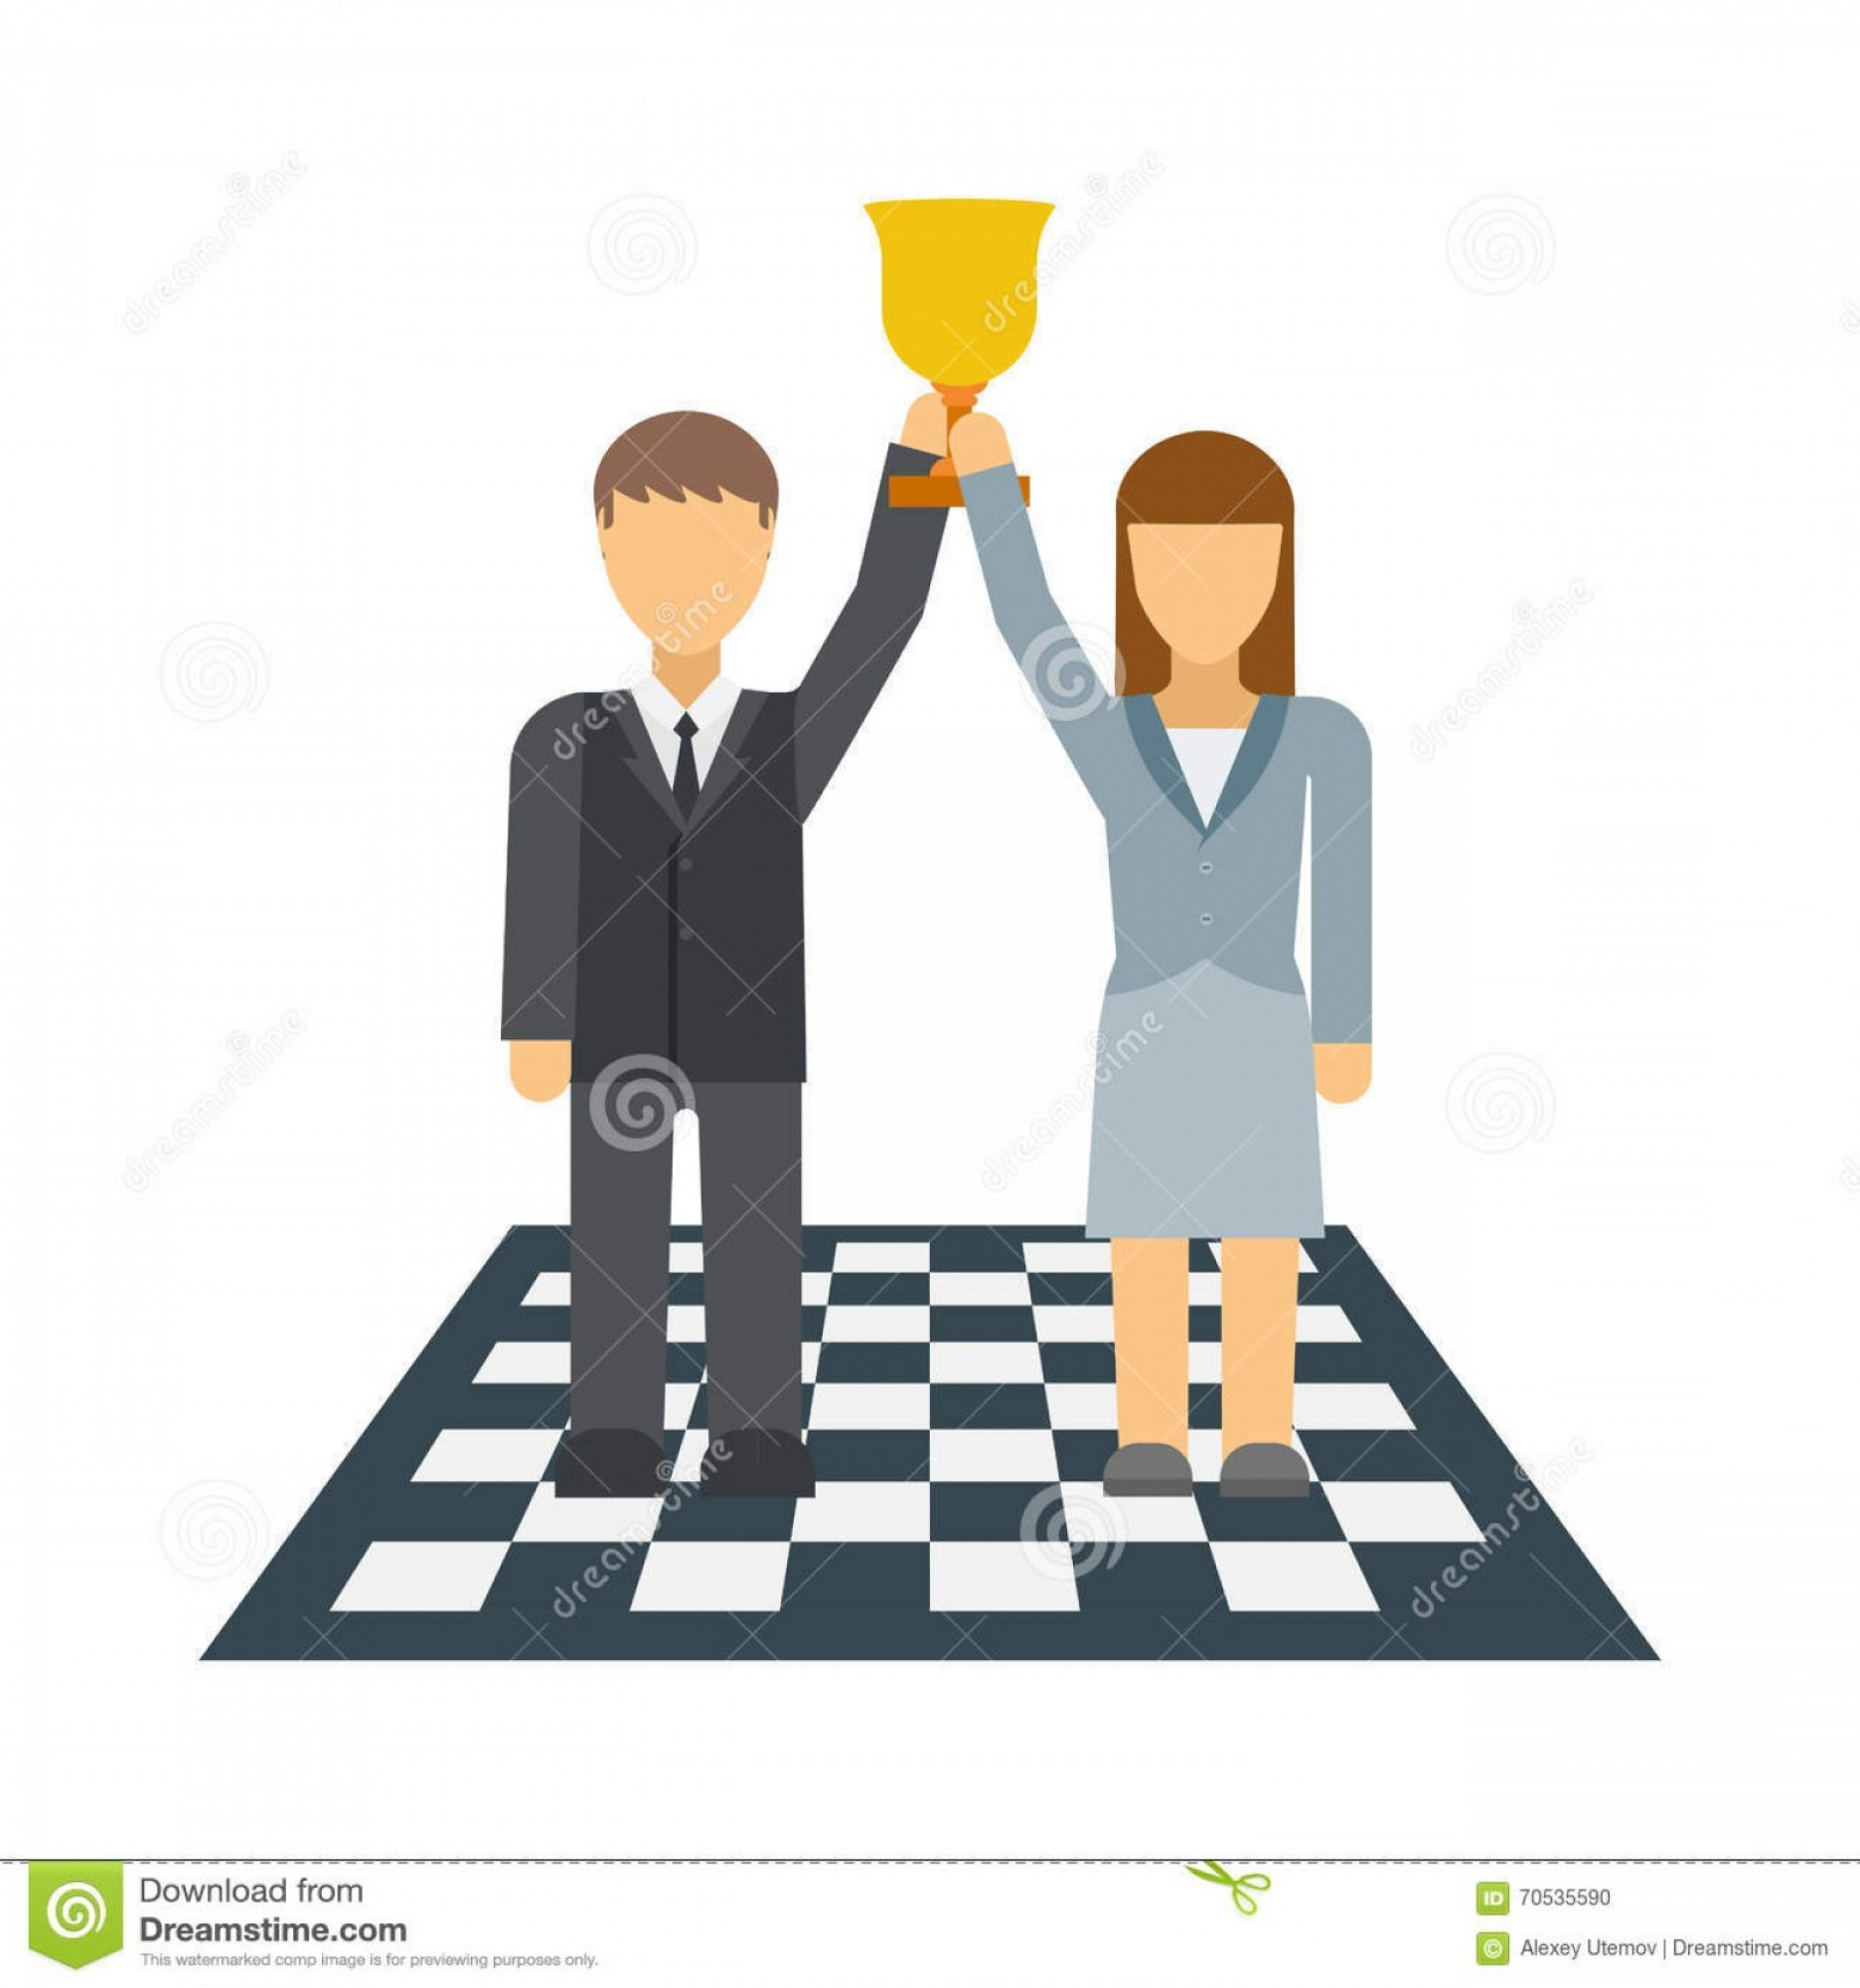 Holding Hands Up Silhouette Vector: Business Winners People Group Silhouette Excited Hold Hands Up Raised Arms With Gold Award Vector Illustration